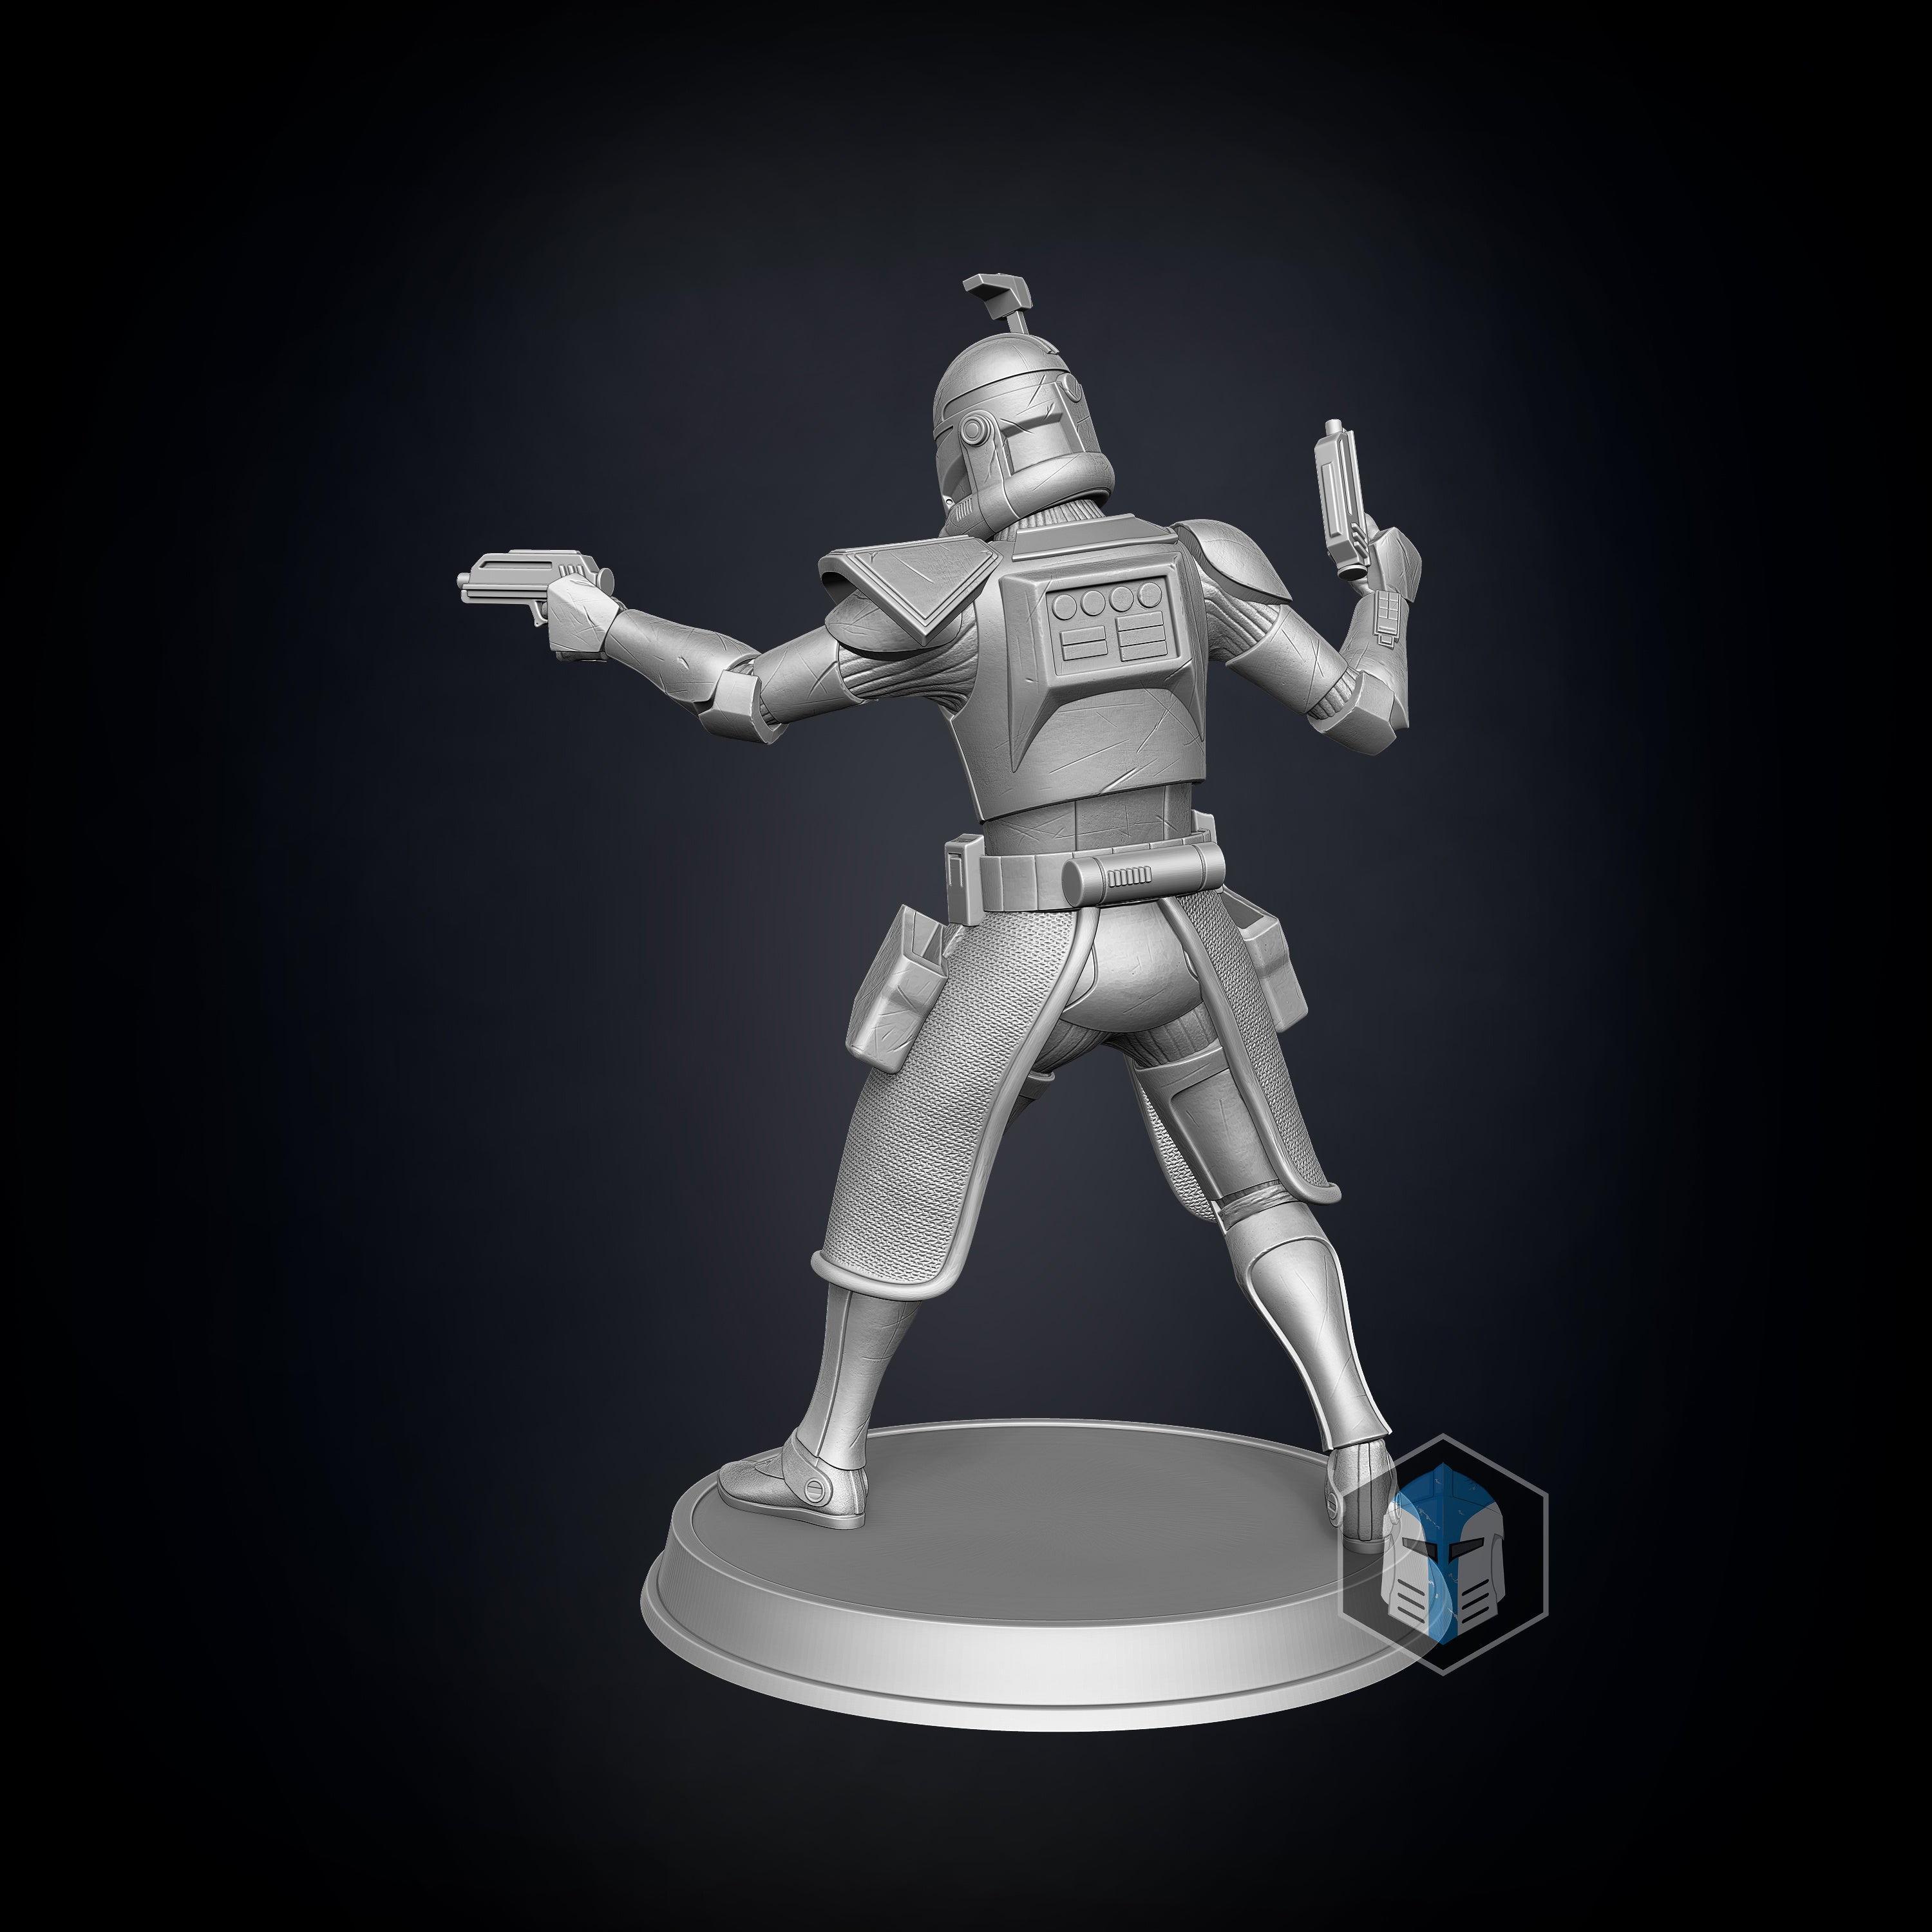 Captain Rex Figurine - Guardian - 3D Print Files - The Galactic Armory